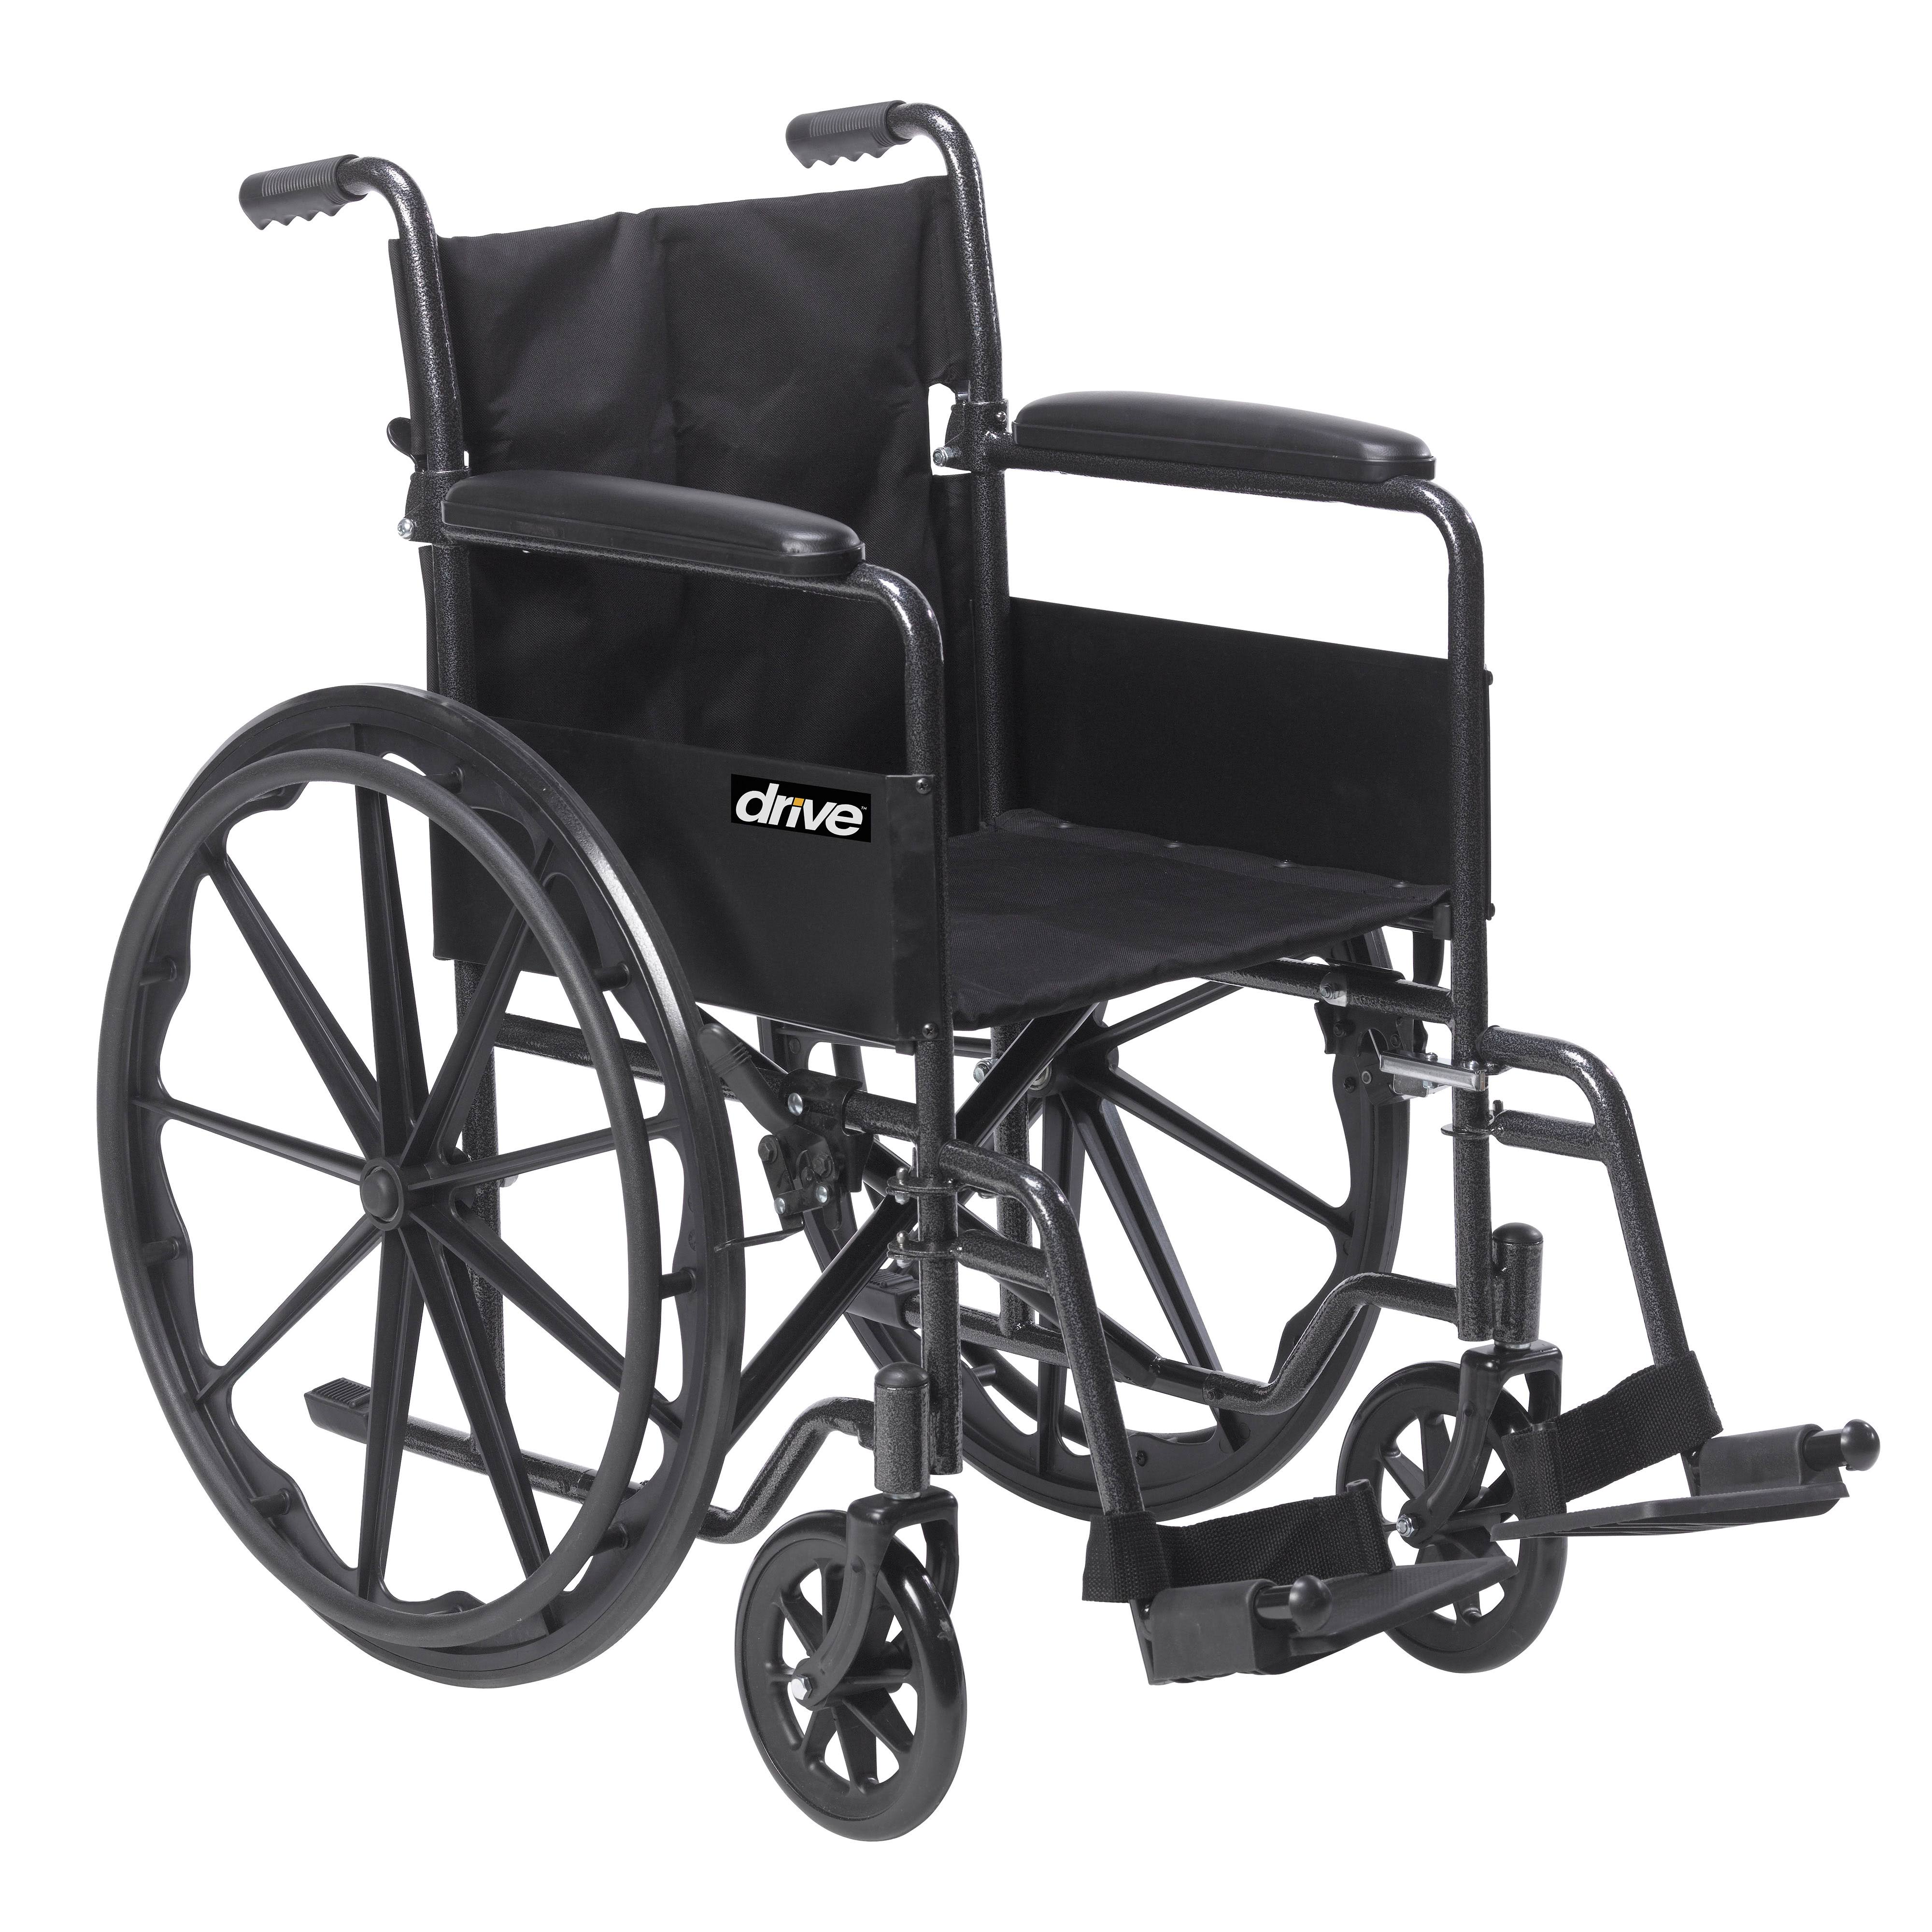 Drive Medical Silver Sport 1 Wheelchair - with Full Arms and Swing away Removable Footrest, Black